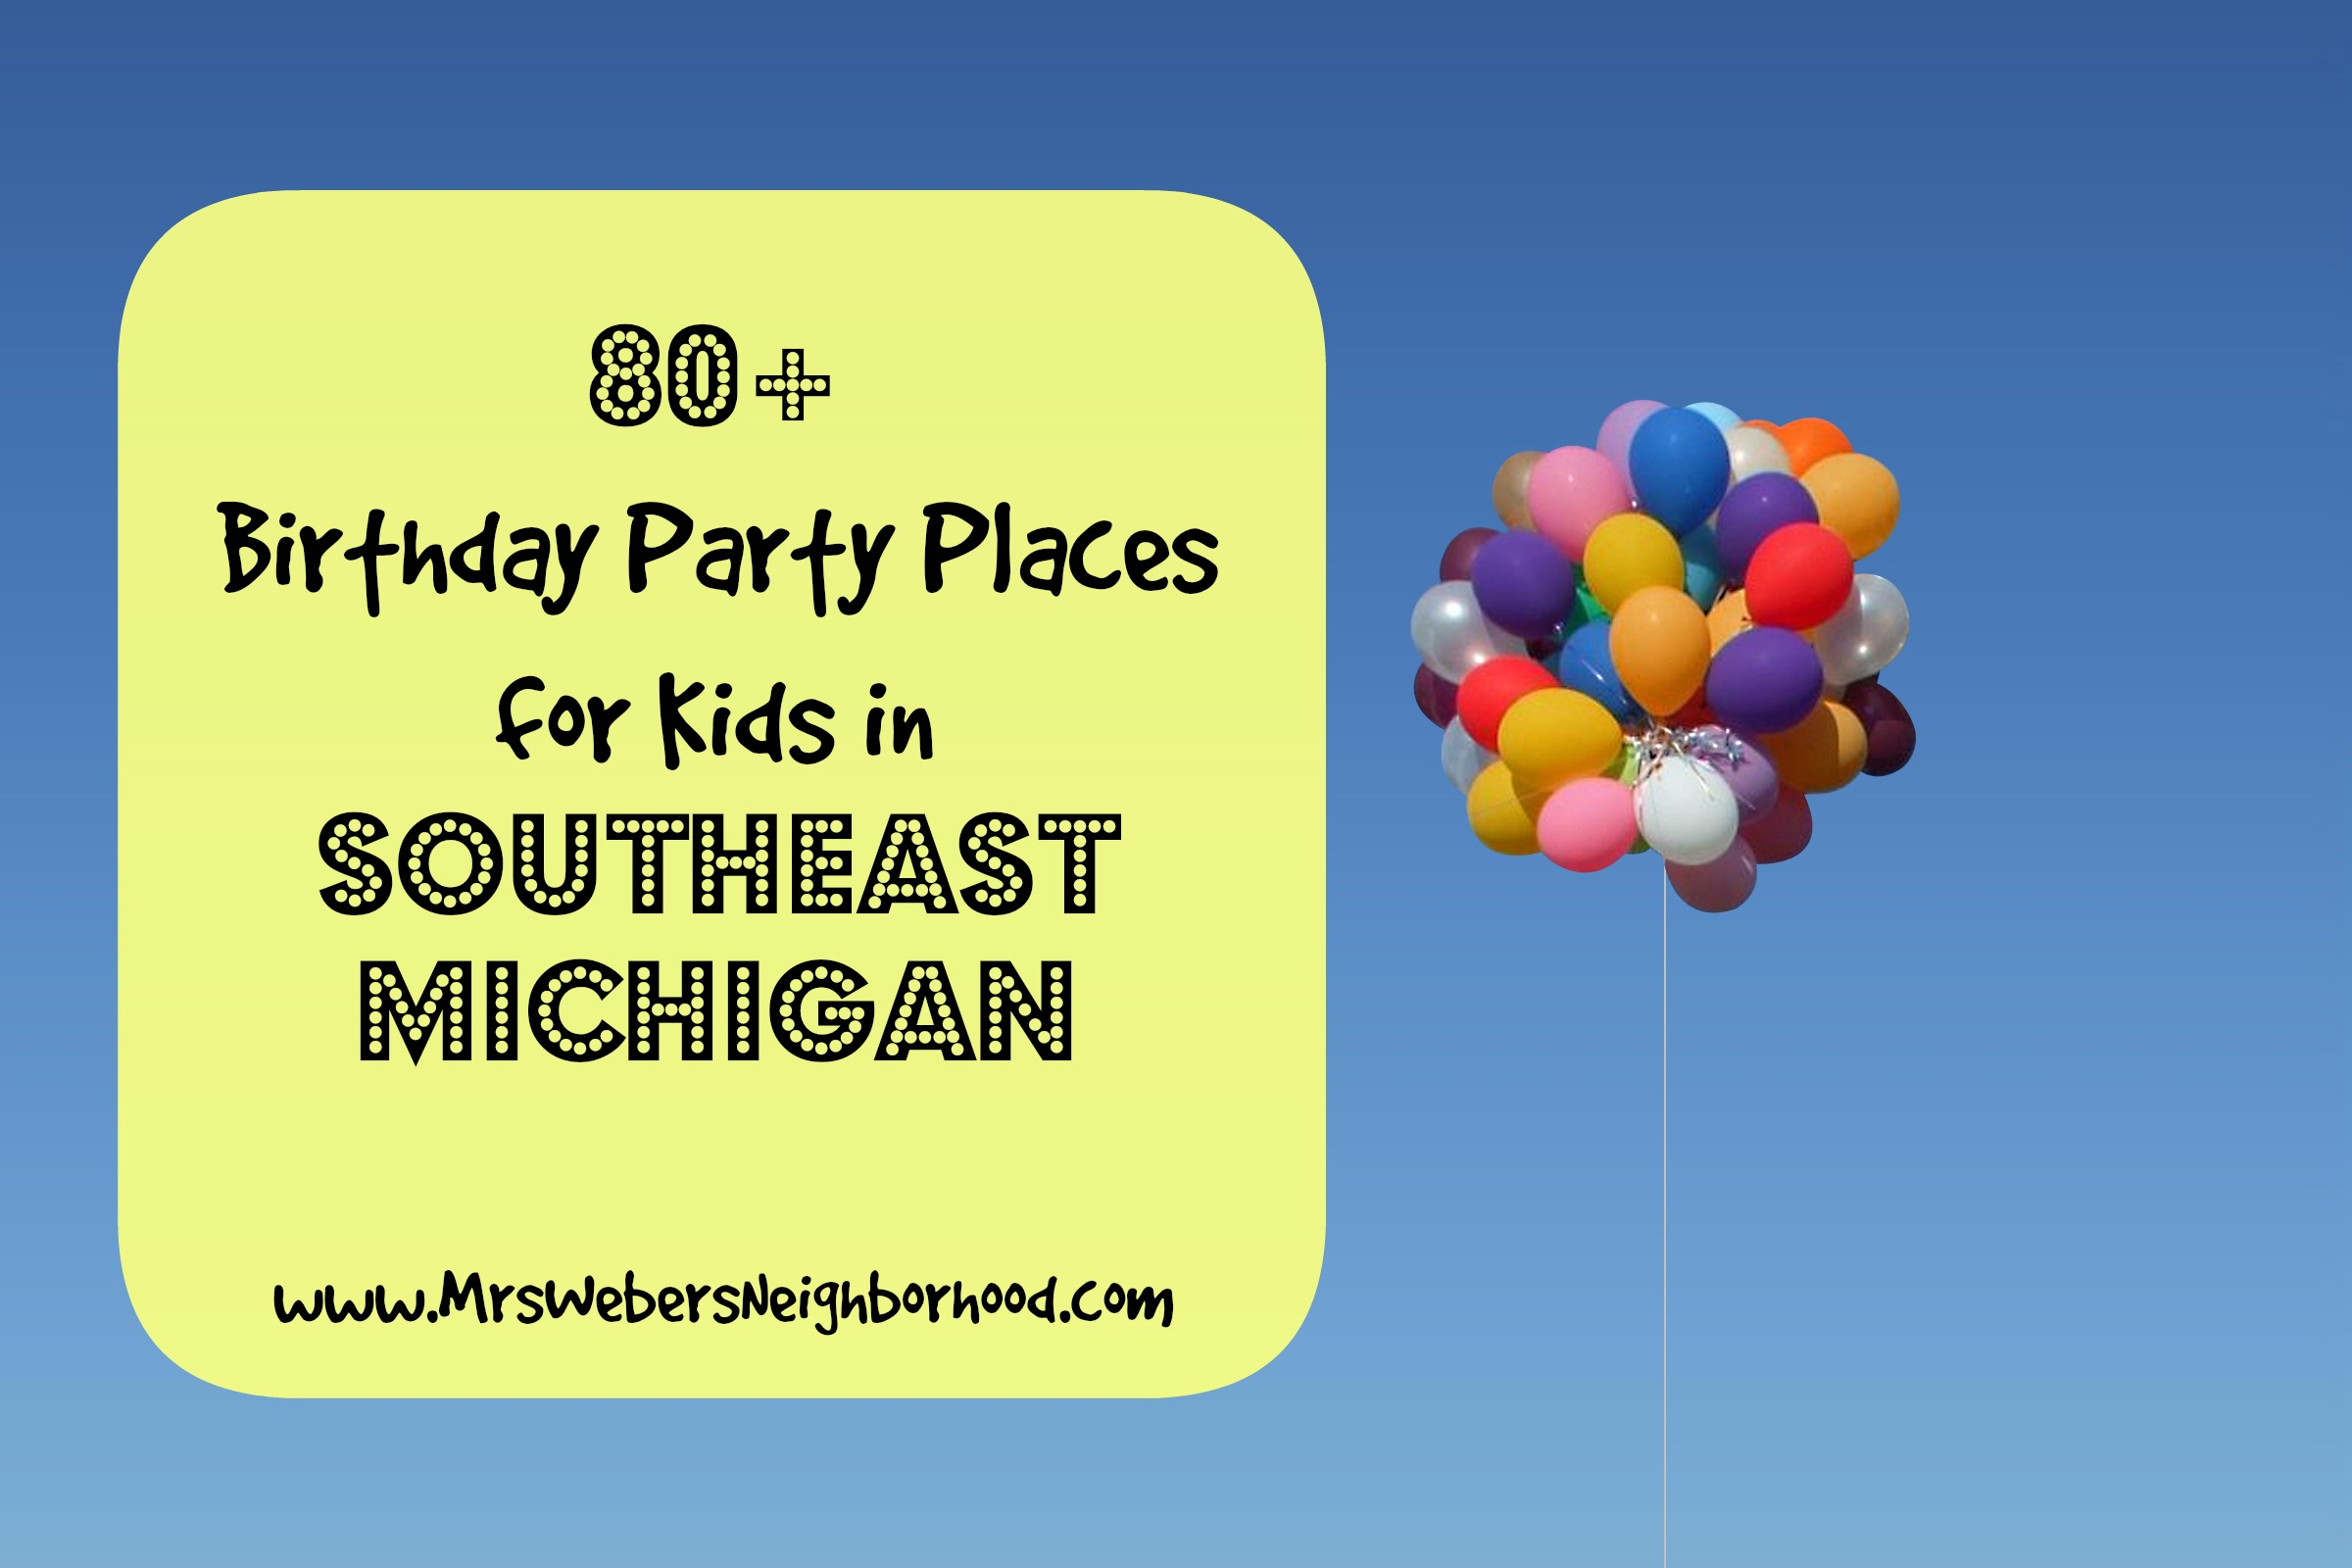 80 Birthday Party Places for Kids in Southeast Michigan